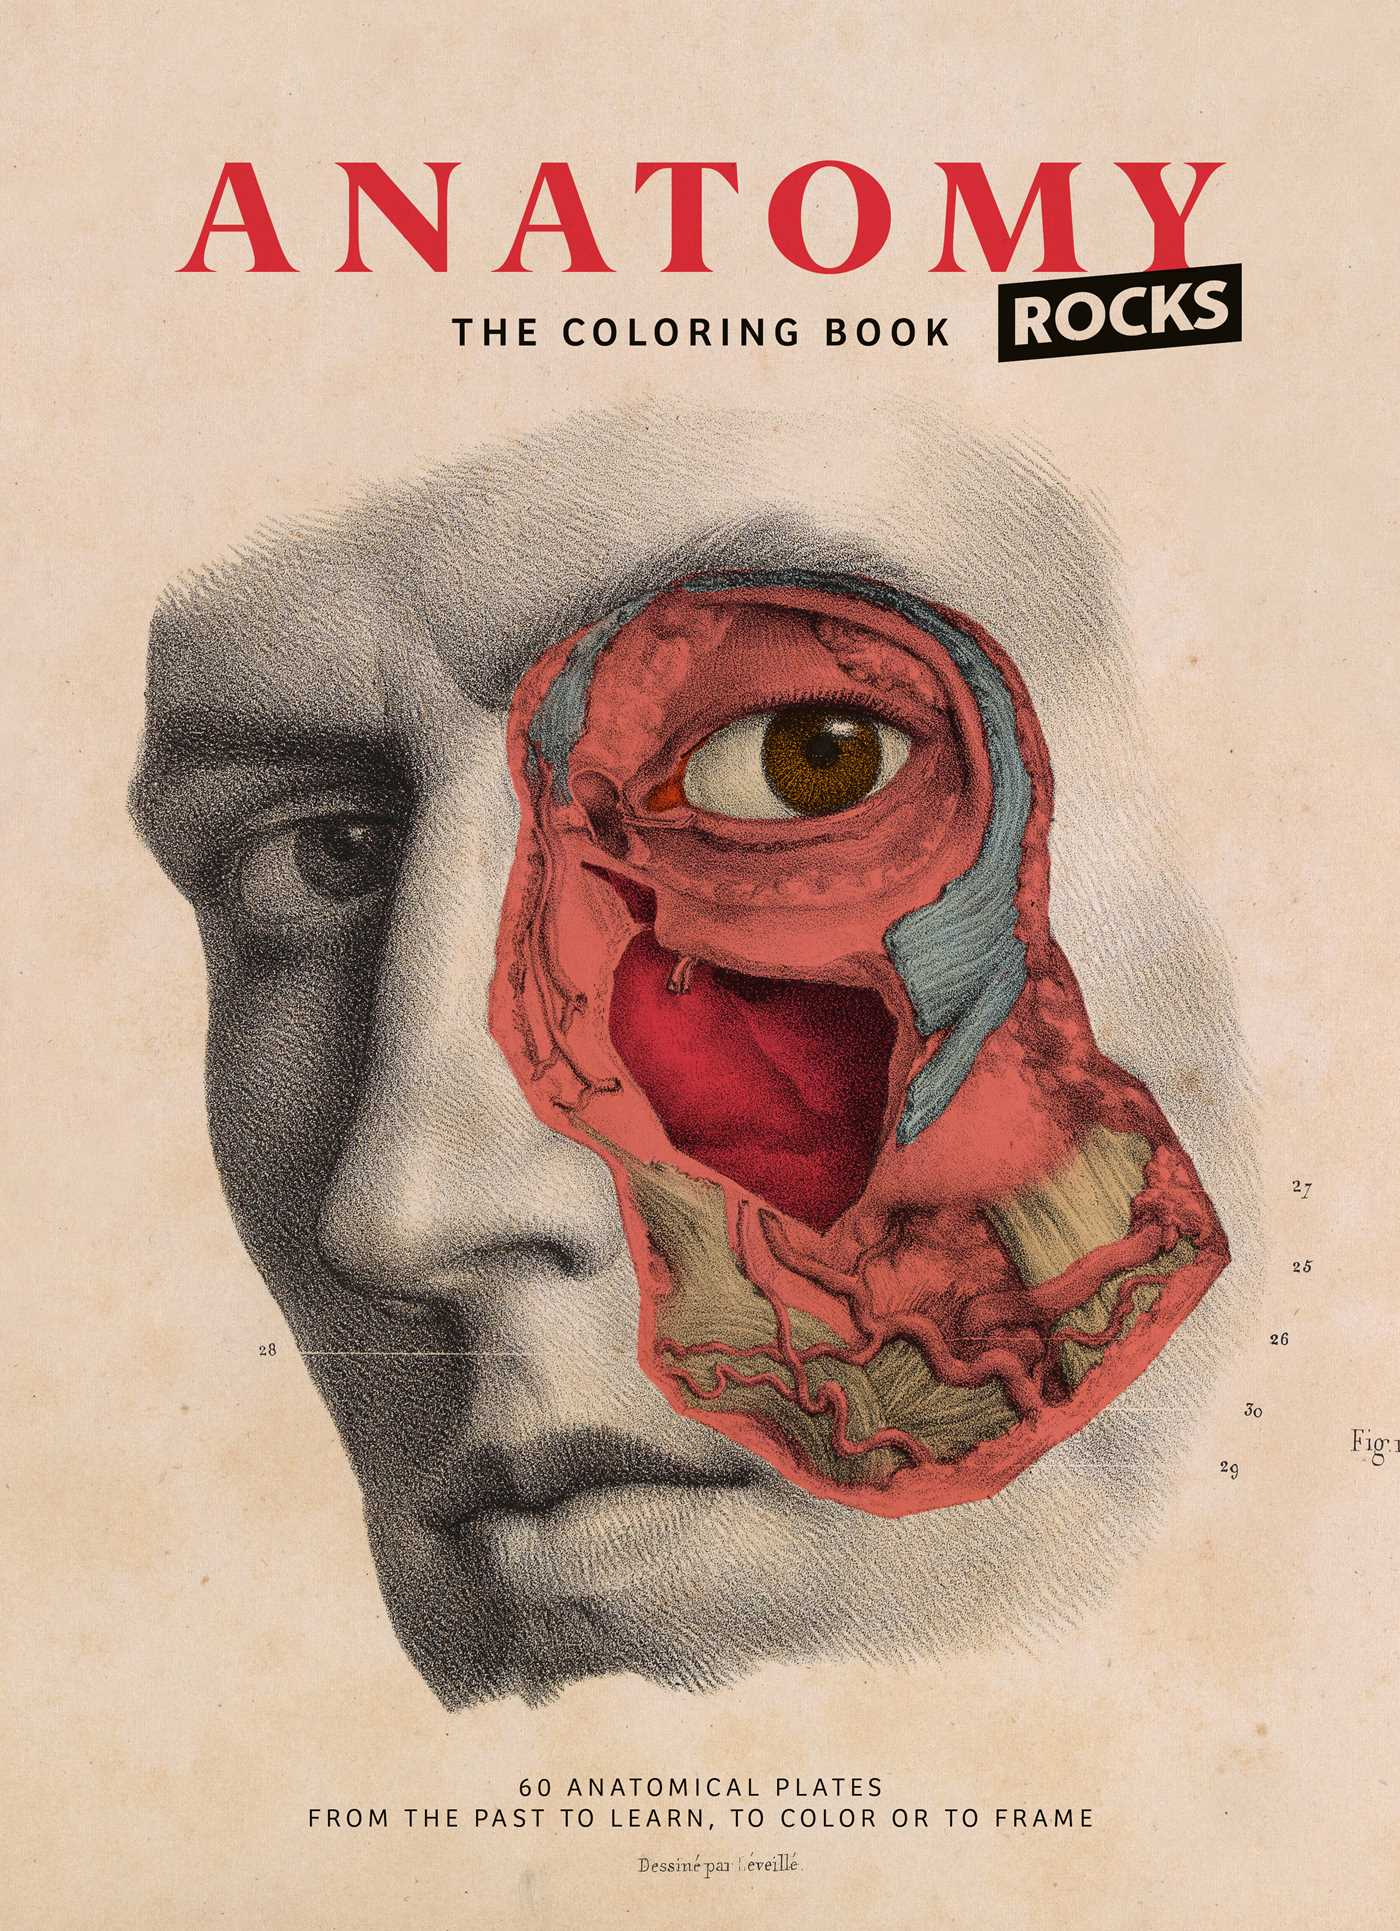 Anatomy coloring book | Book by Lachat | Official Publisher Page ...